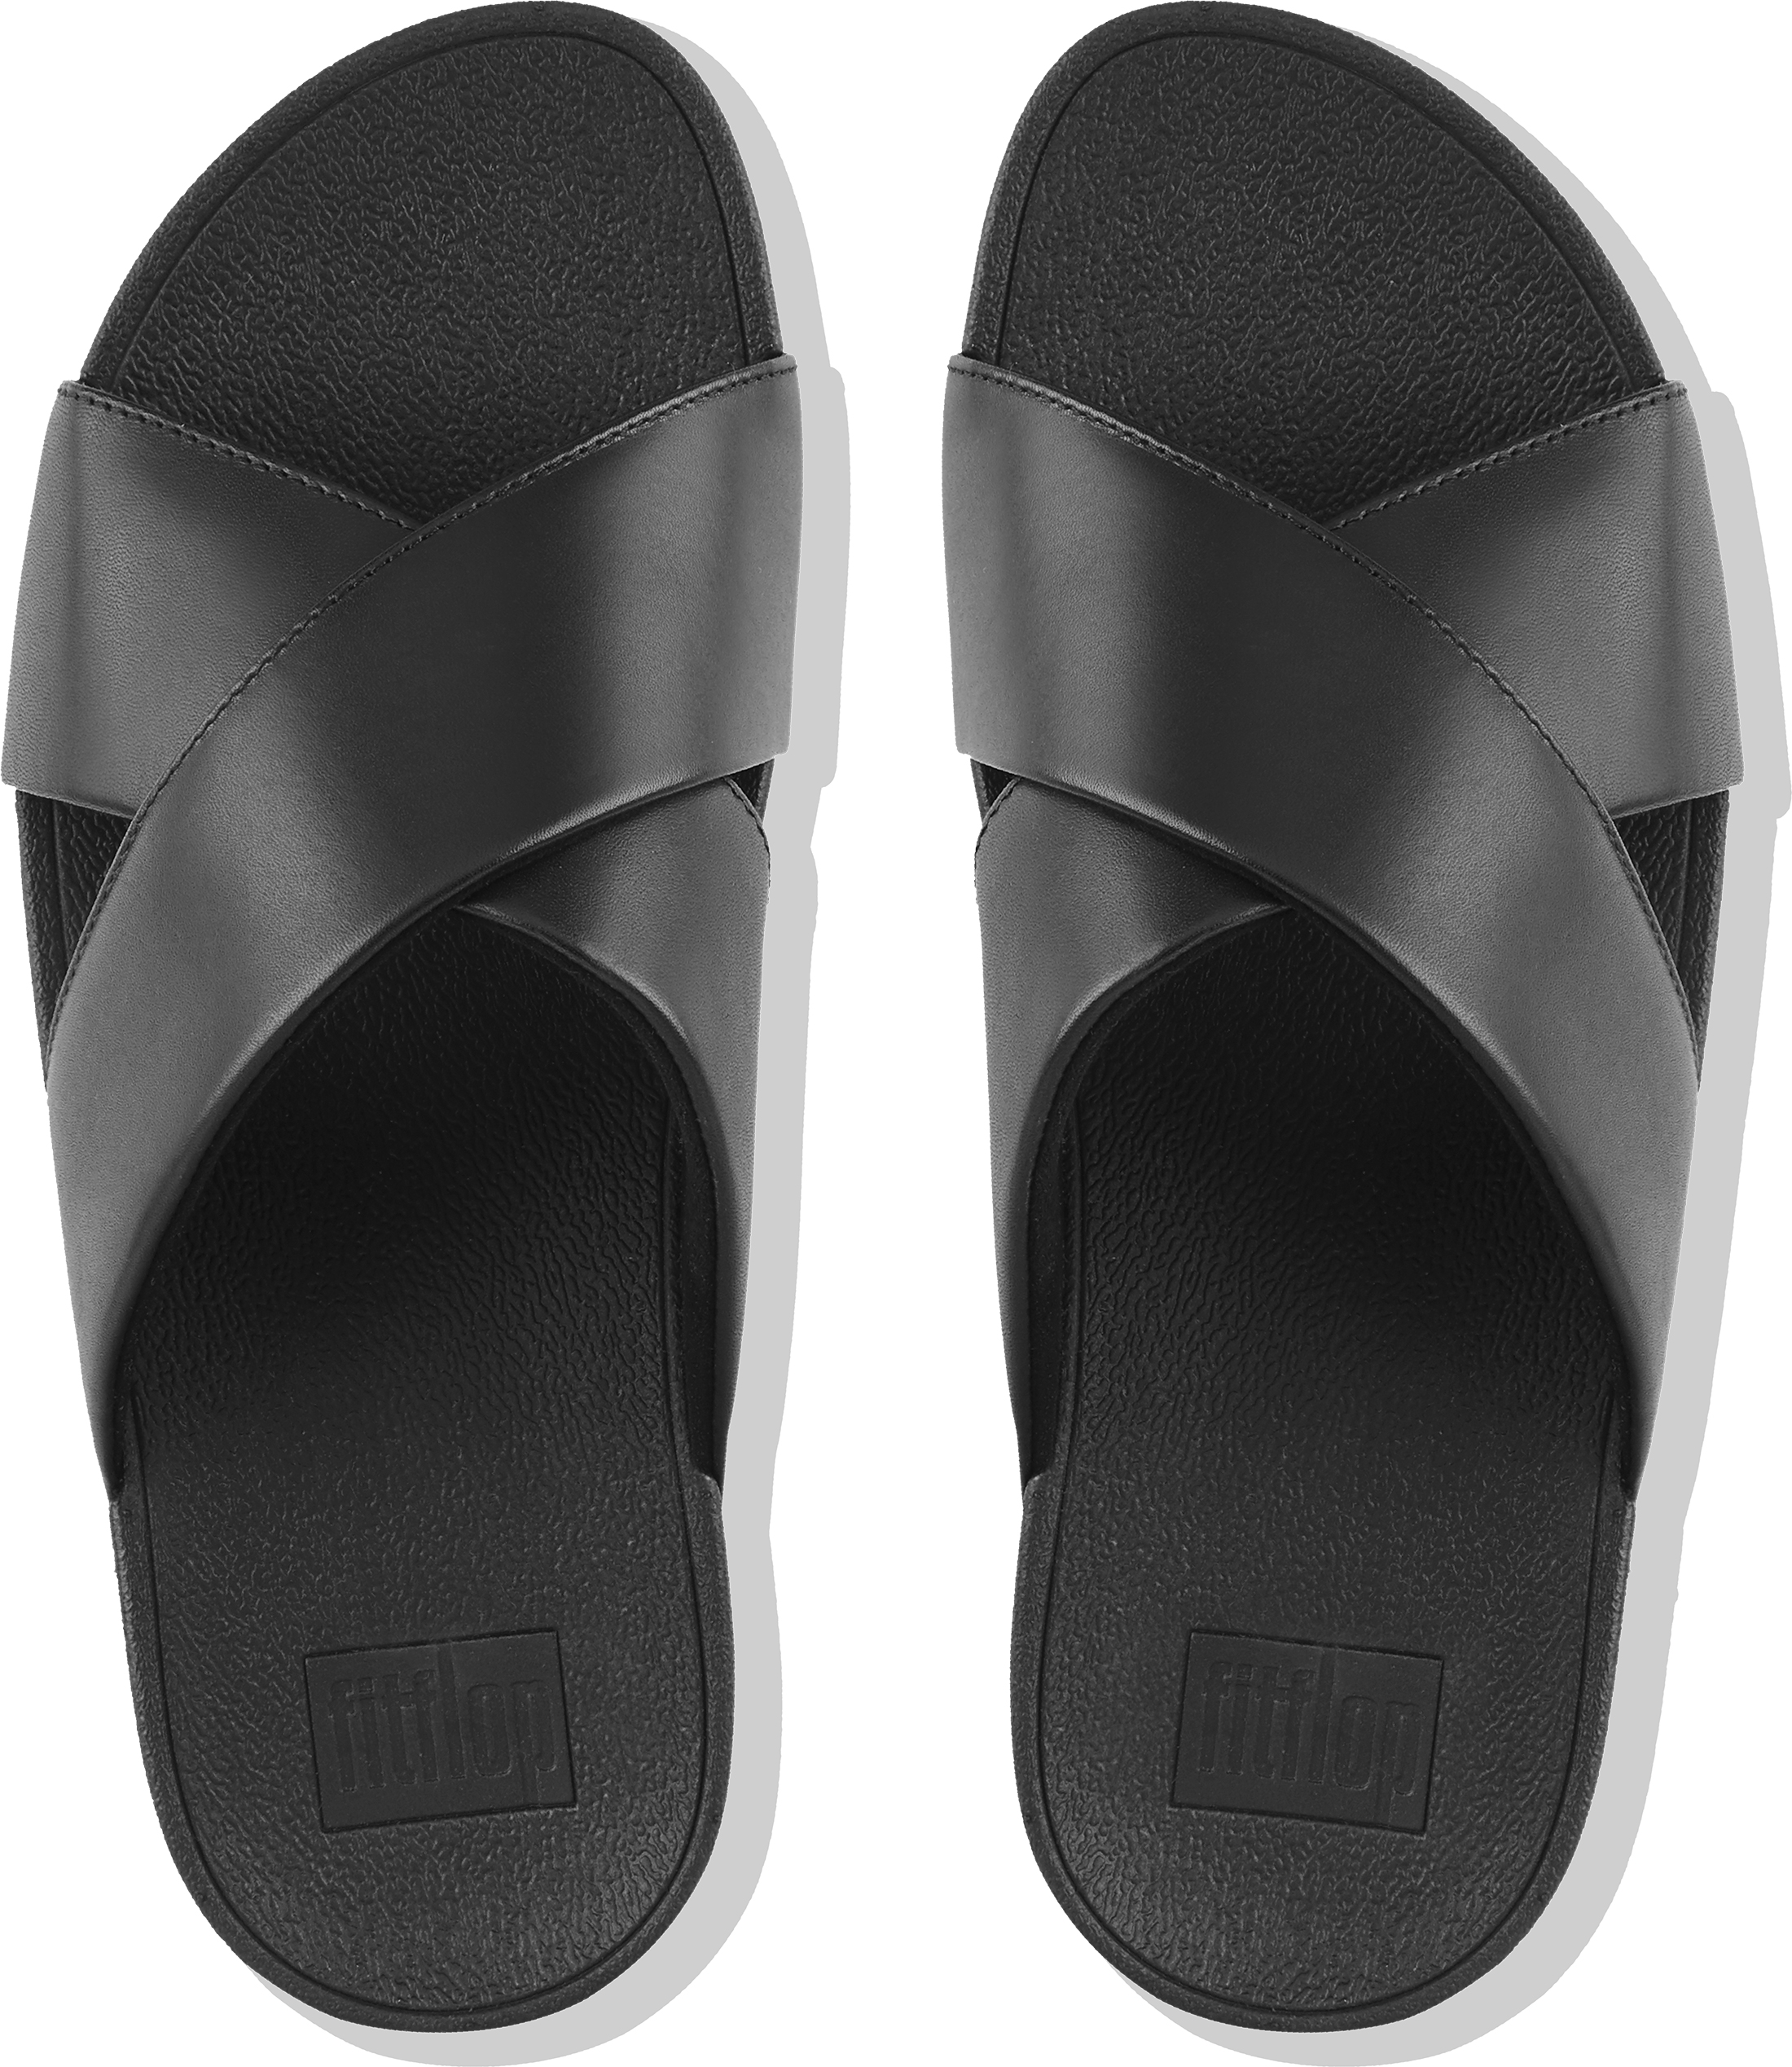 26a6f5139e806c FitFlop Women s Lulu Leather Cross Slide Sandals Uk8. About this product.  Picture 1 of 4  Picture 2 of 4  Picture 3 of 4 ...